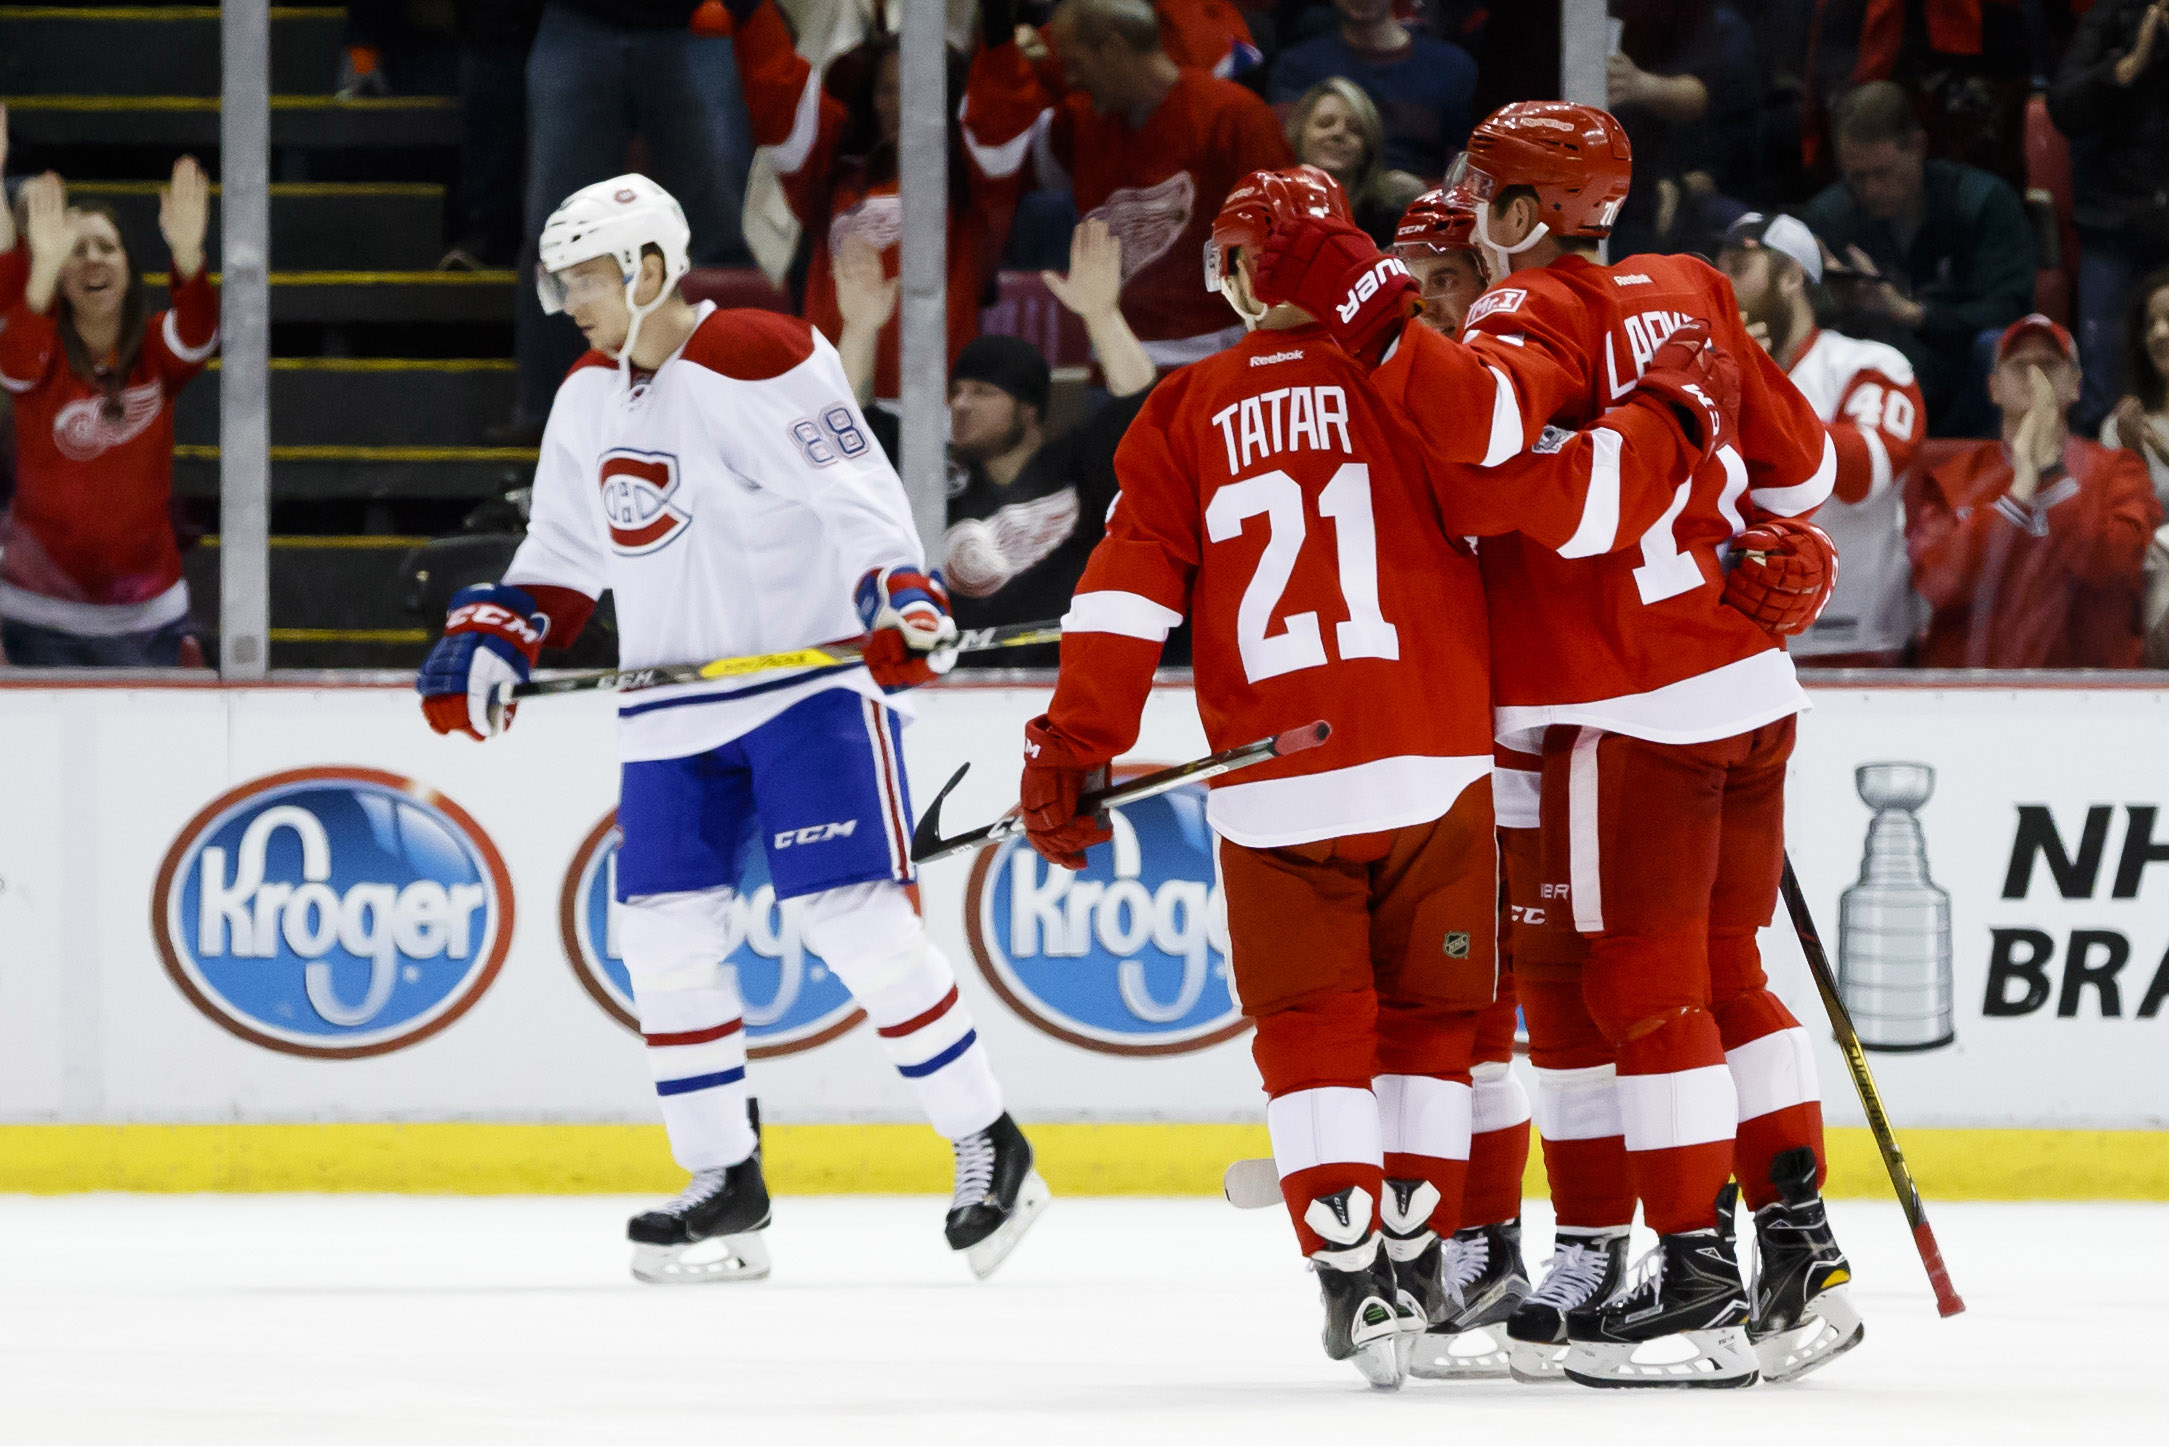 10001591-nhl-montreal-canadiens-at-detroit-red-wings